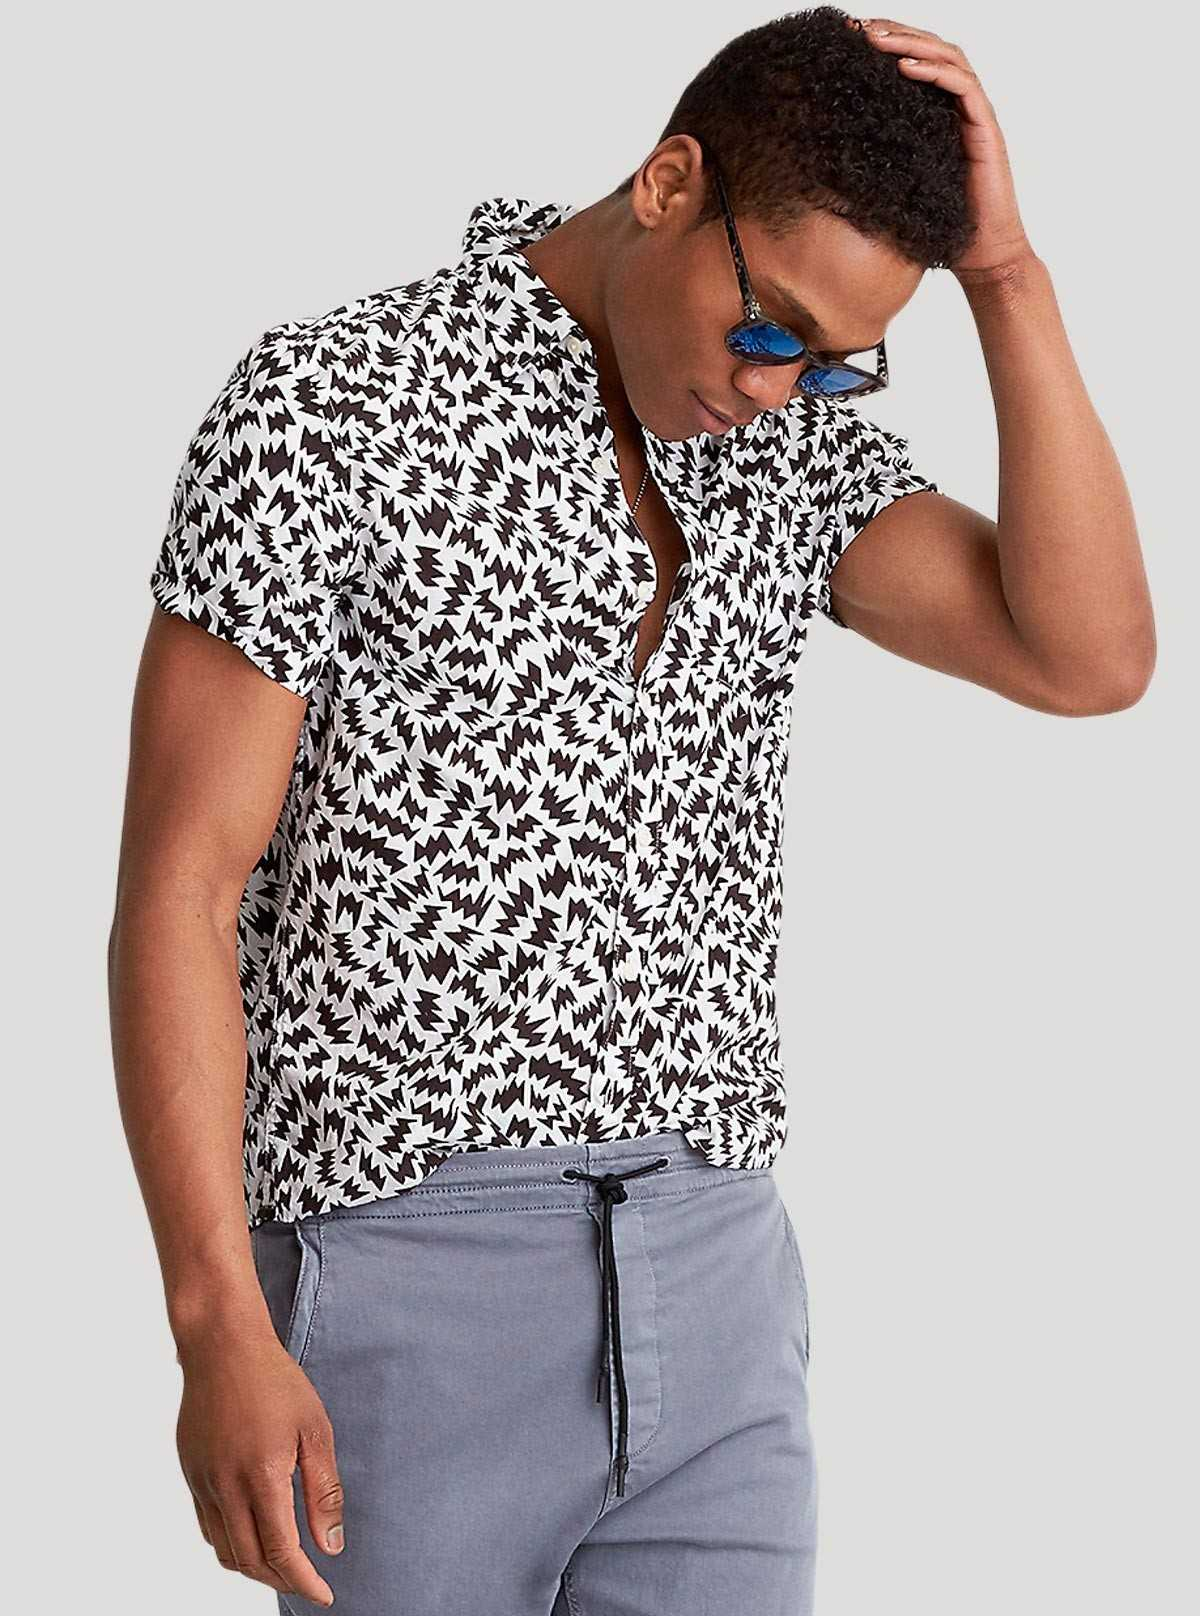 Black Graphic Printed Shirt